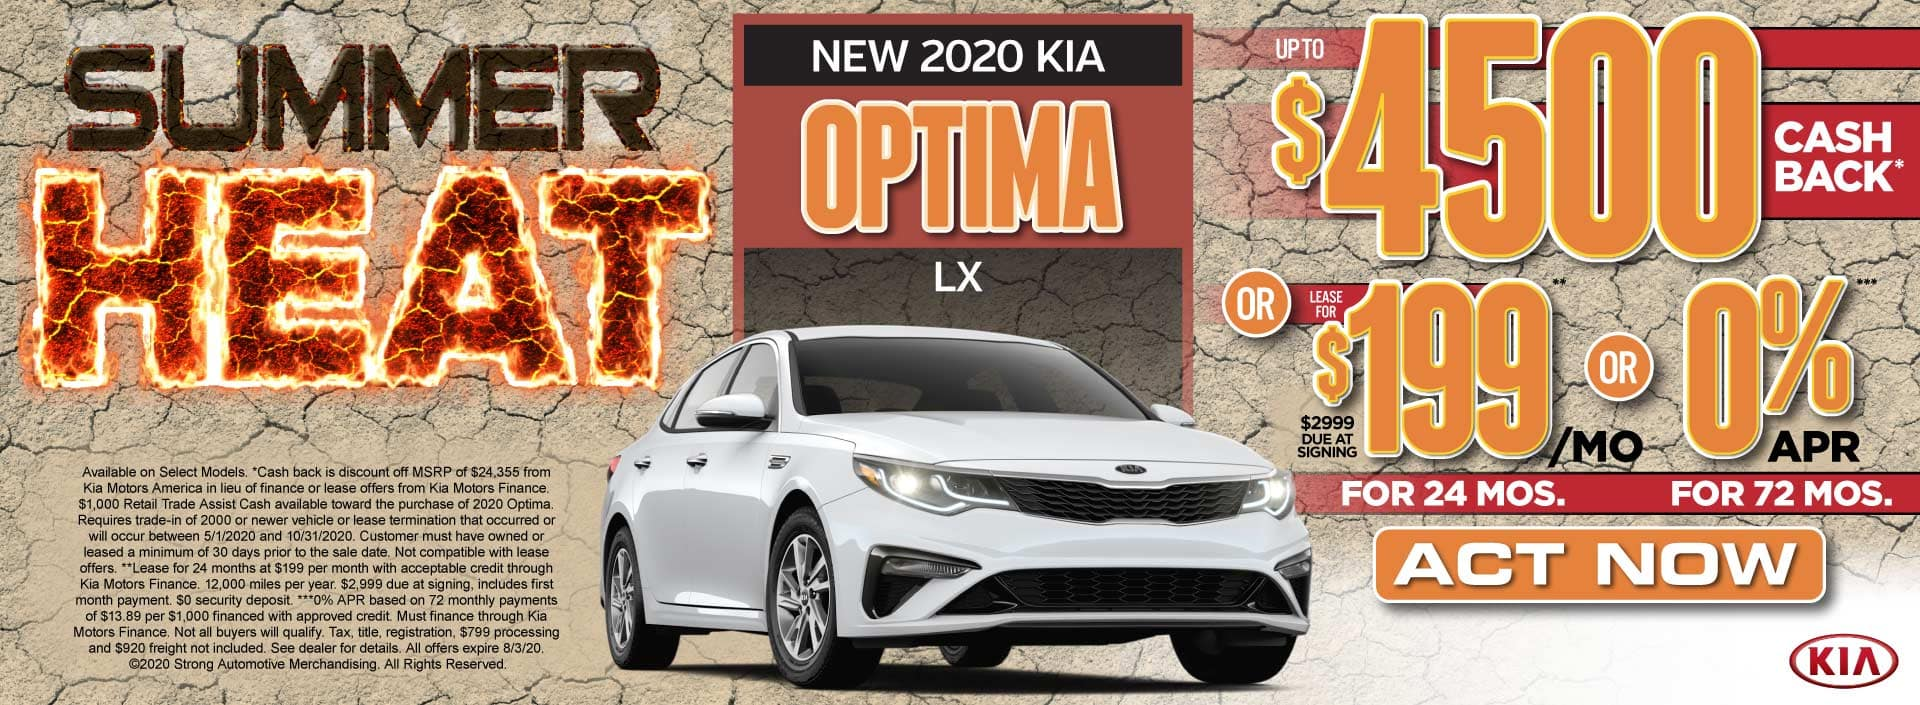 New 2020 Kia Optima up to $4500 Cash Back or $199/mo - Act Now